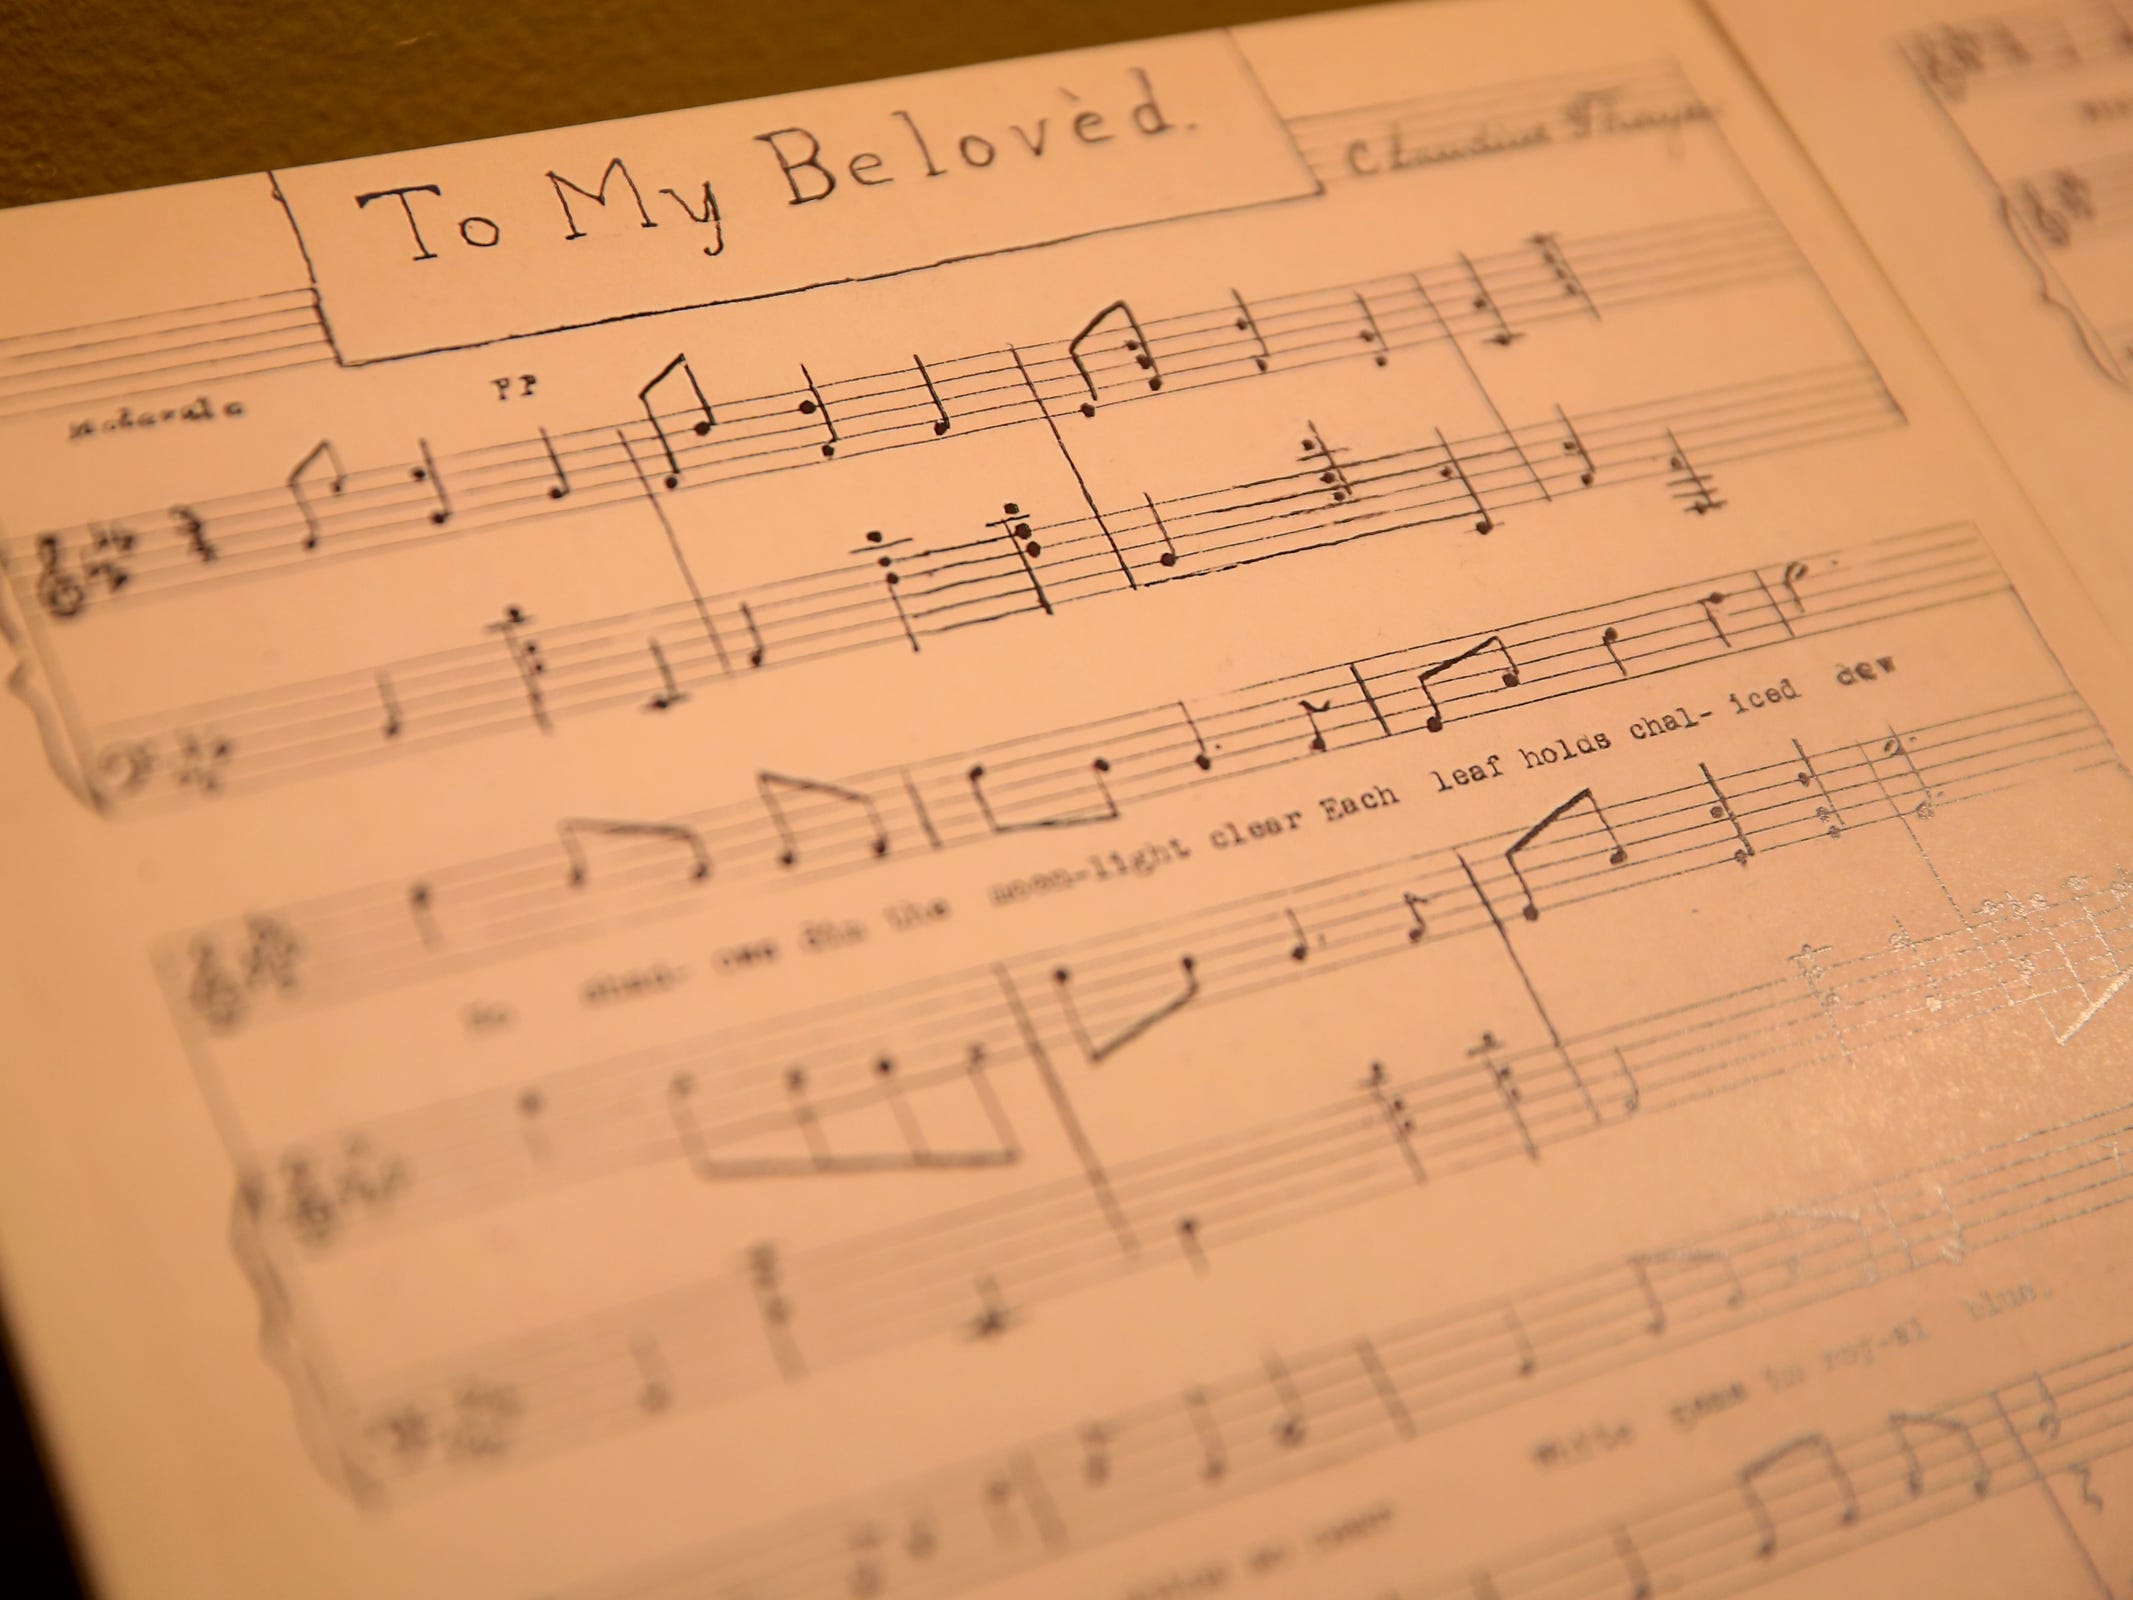 Sheet music written by members of the Bush Family from the Bush House Museum, part of the Romance: Stories of Love and Passion in the Mid-Willamette Valley exhibit running through April 20 at the Willamette Heritage Center in Salem on Thursday, Jan. 31, 2019.